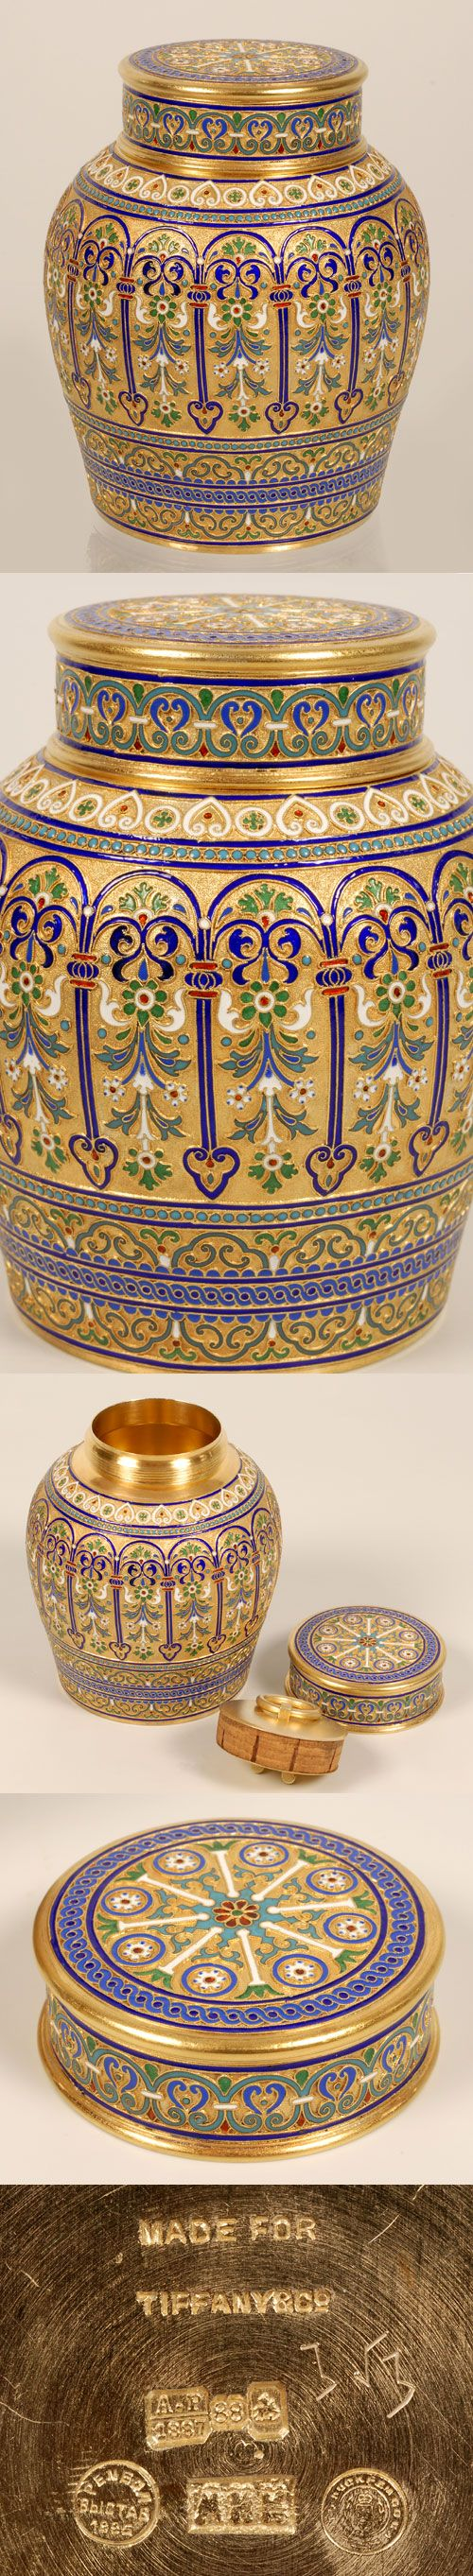 A Russian silver gilt and cloisonne enamel tea caddy, Moscow, circa 1887. The barrel shape caddy enameled in an overall multi-color scrolling foliate motif between stylized cobalt blue enamel columned arches against a gilded stippled ground